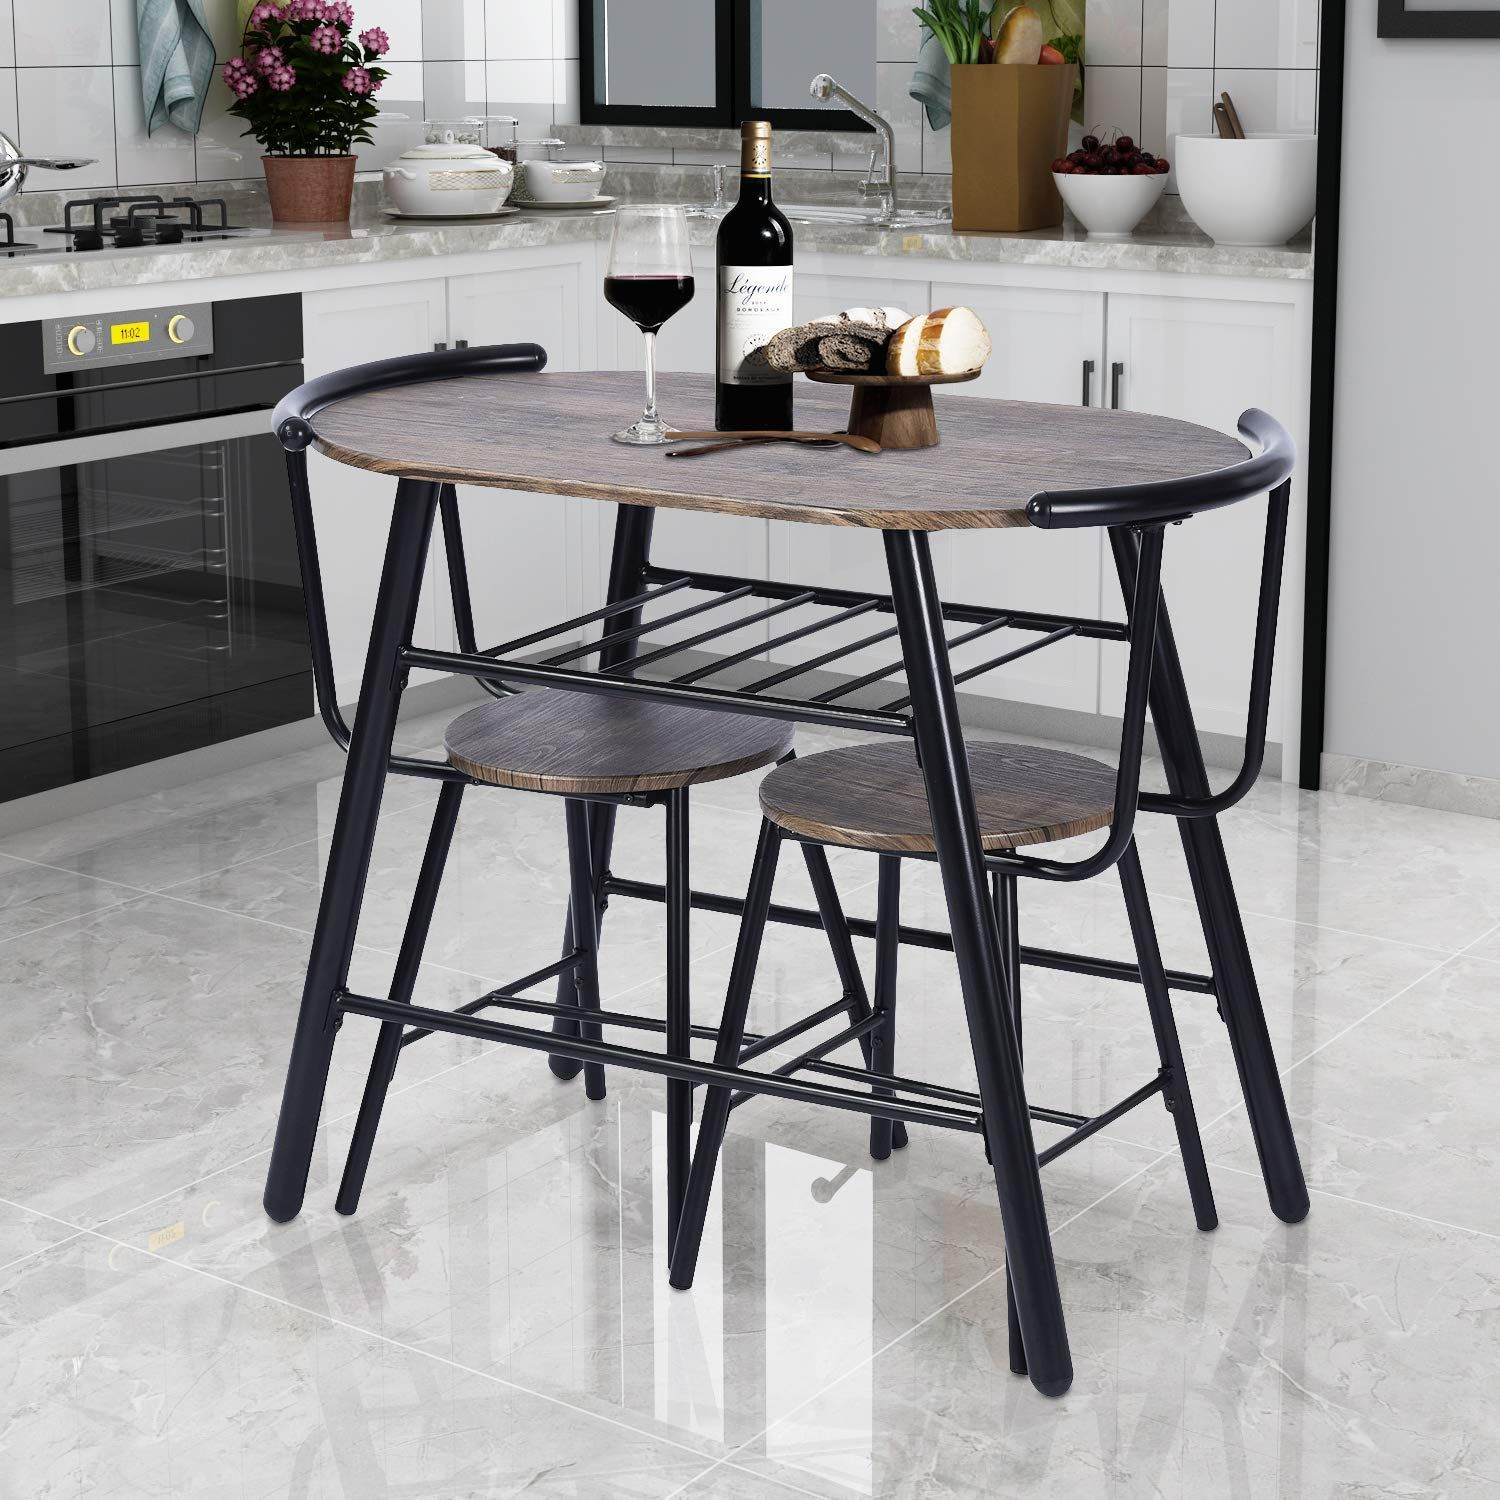 Top 5 Kitchen Tables For Small Spaces Costculator Dining Table Kitchen Set Small Chairs P In 2020 Kitchen Table Settings Bistro Table Set Rustic Kitchen Tables